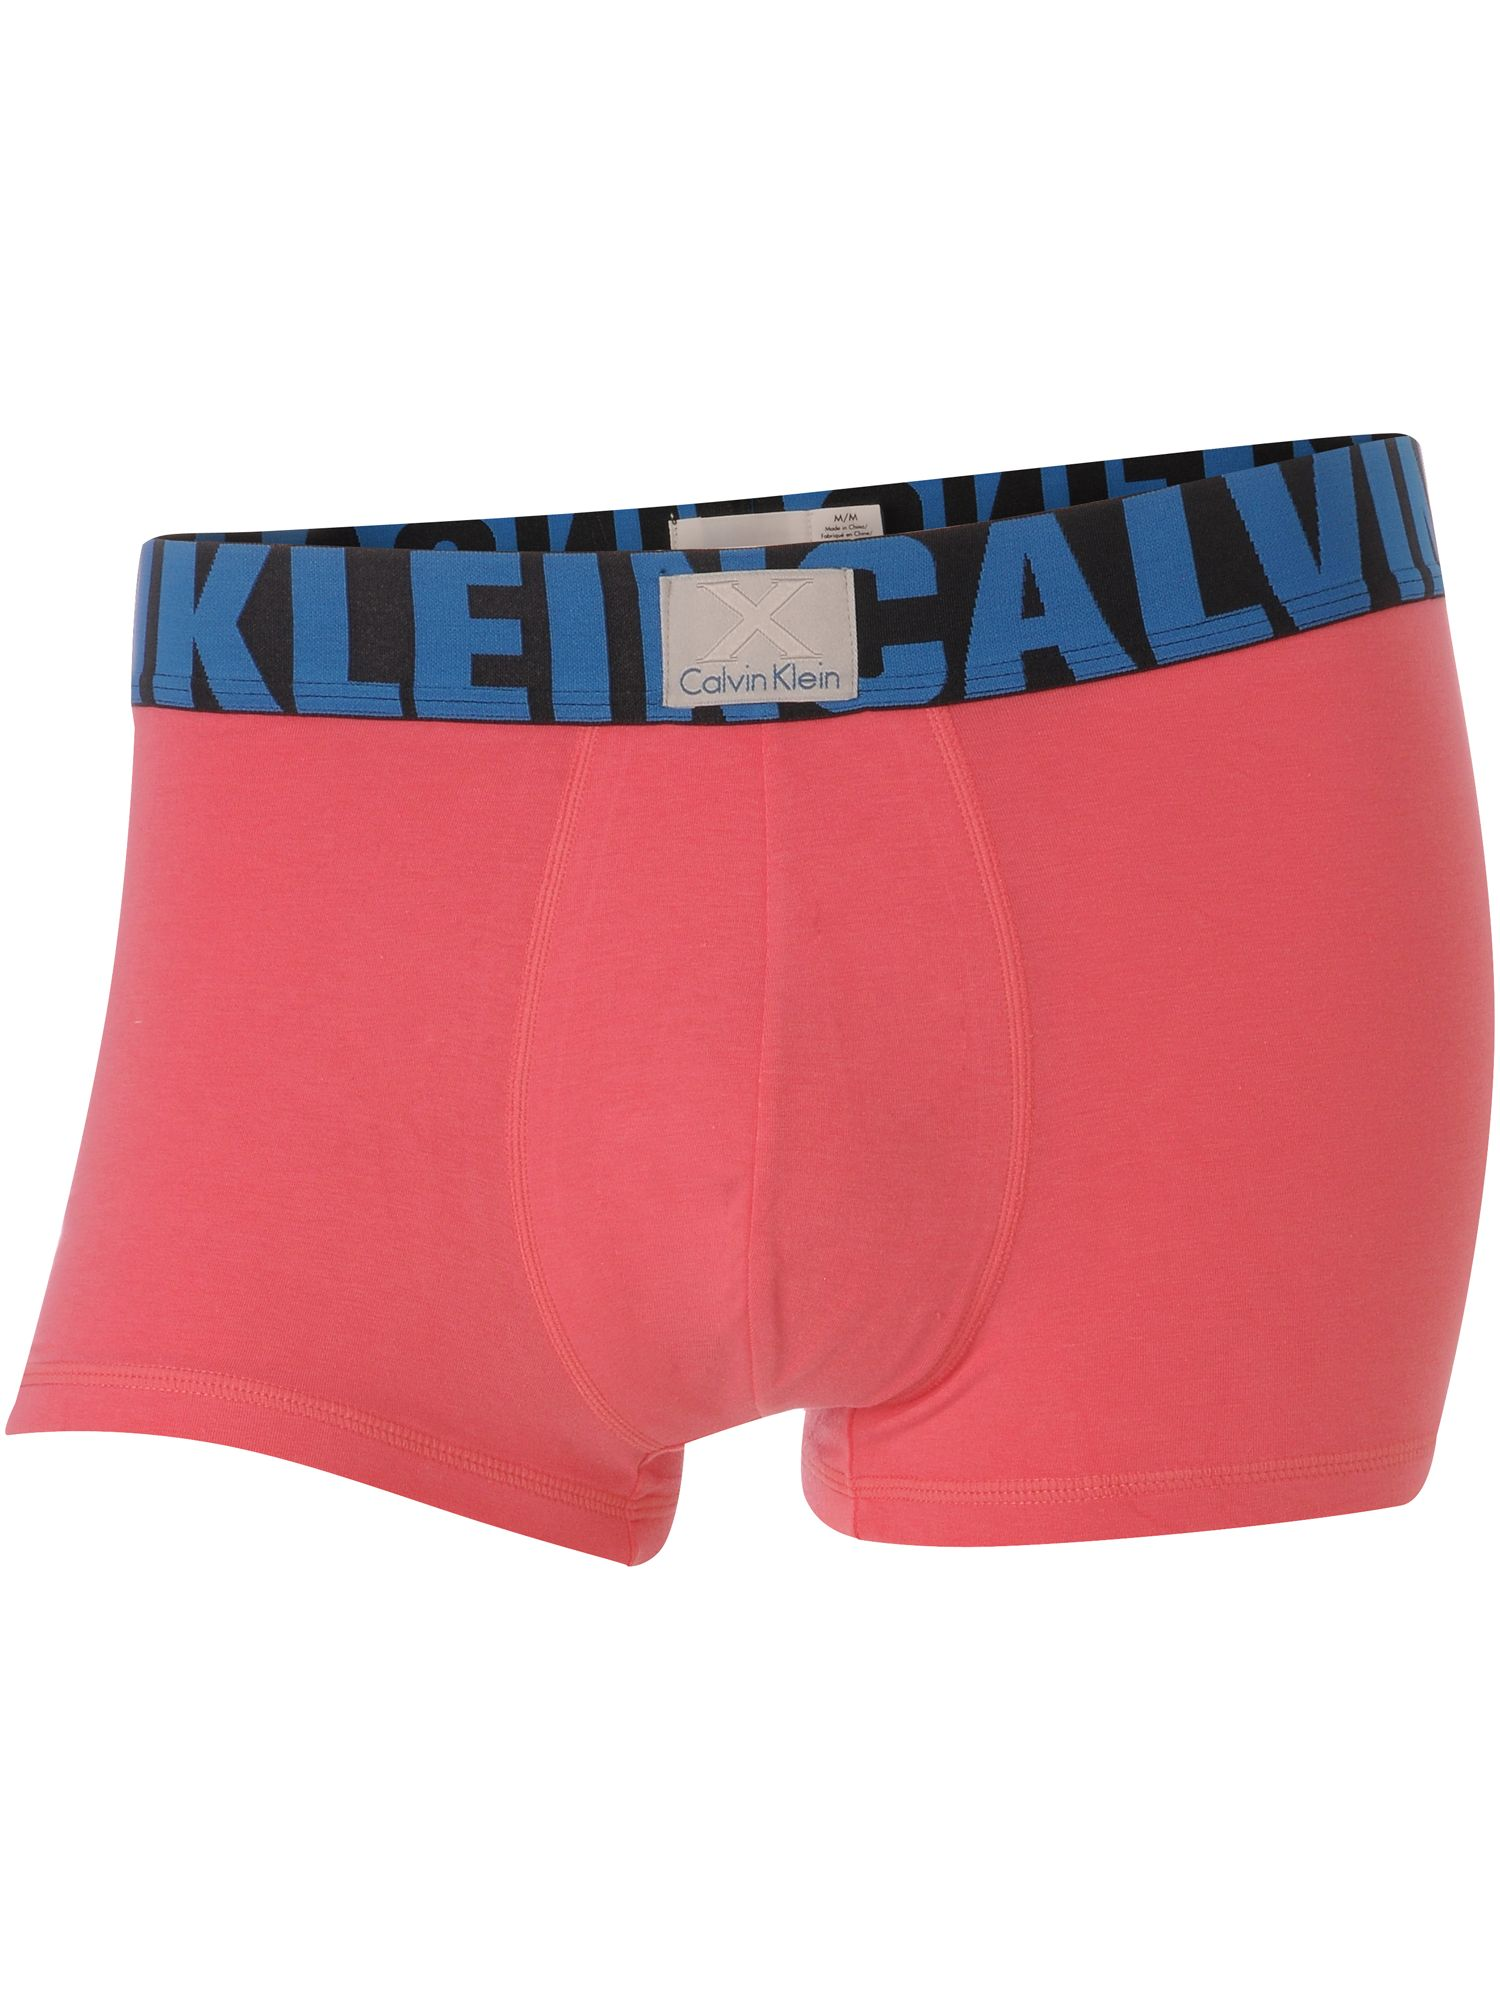 Calvin Klein X watermelon bright trunk product image